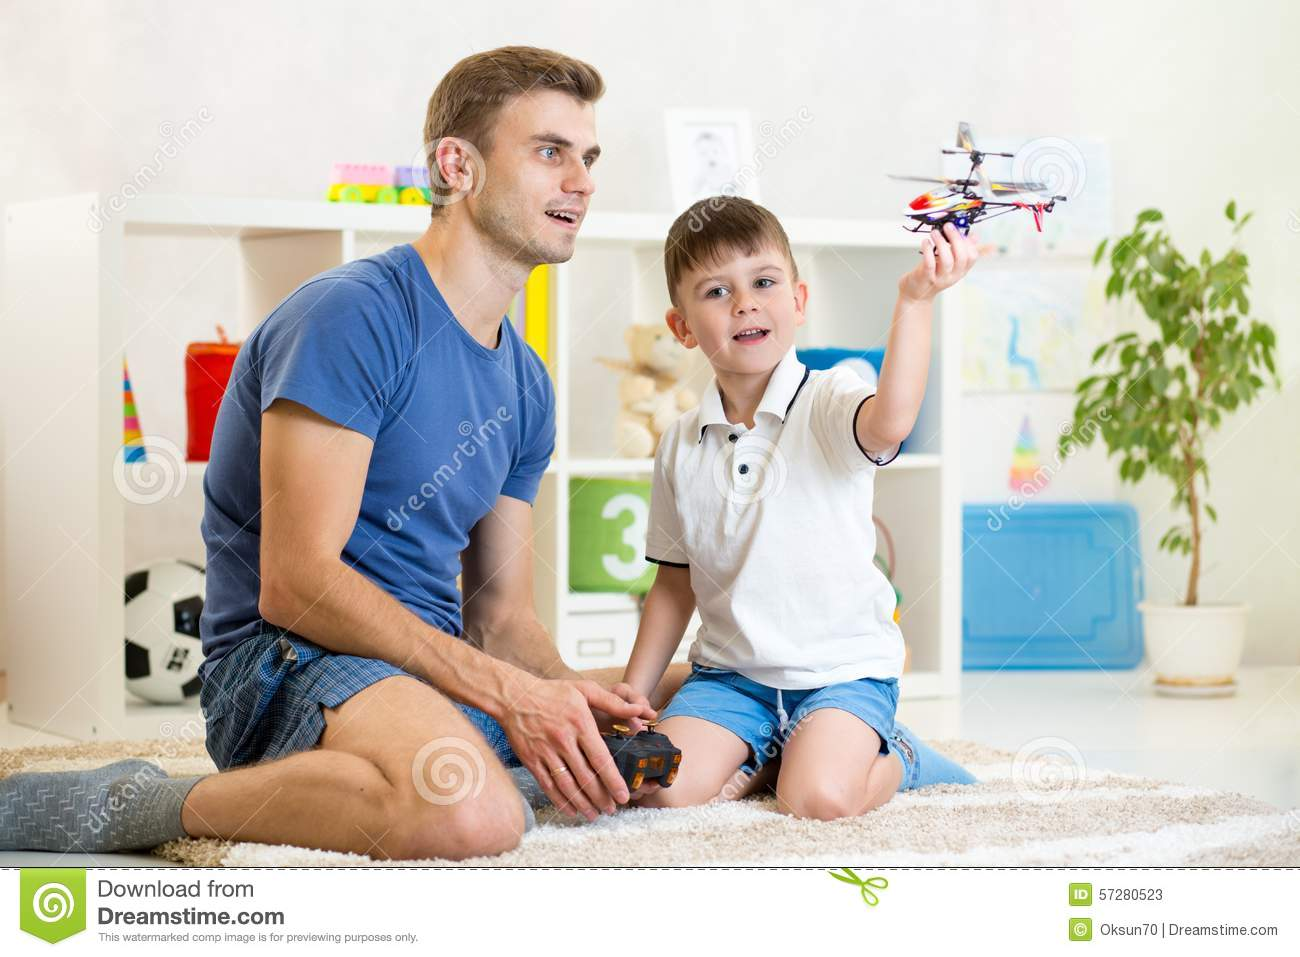 child helicopter toy with Stock Photo Father His Son Play Rc Helicopter Toy Playing Image57280523 on Watch likewise Sofl1201 besides Explore and learn helicopter furthermore Stock Photo Father His Son Play Rc Helicopter Toy Playing Image57280523 also Passenger Train 60197.